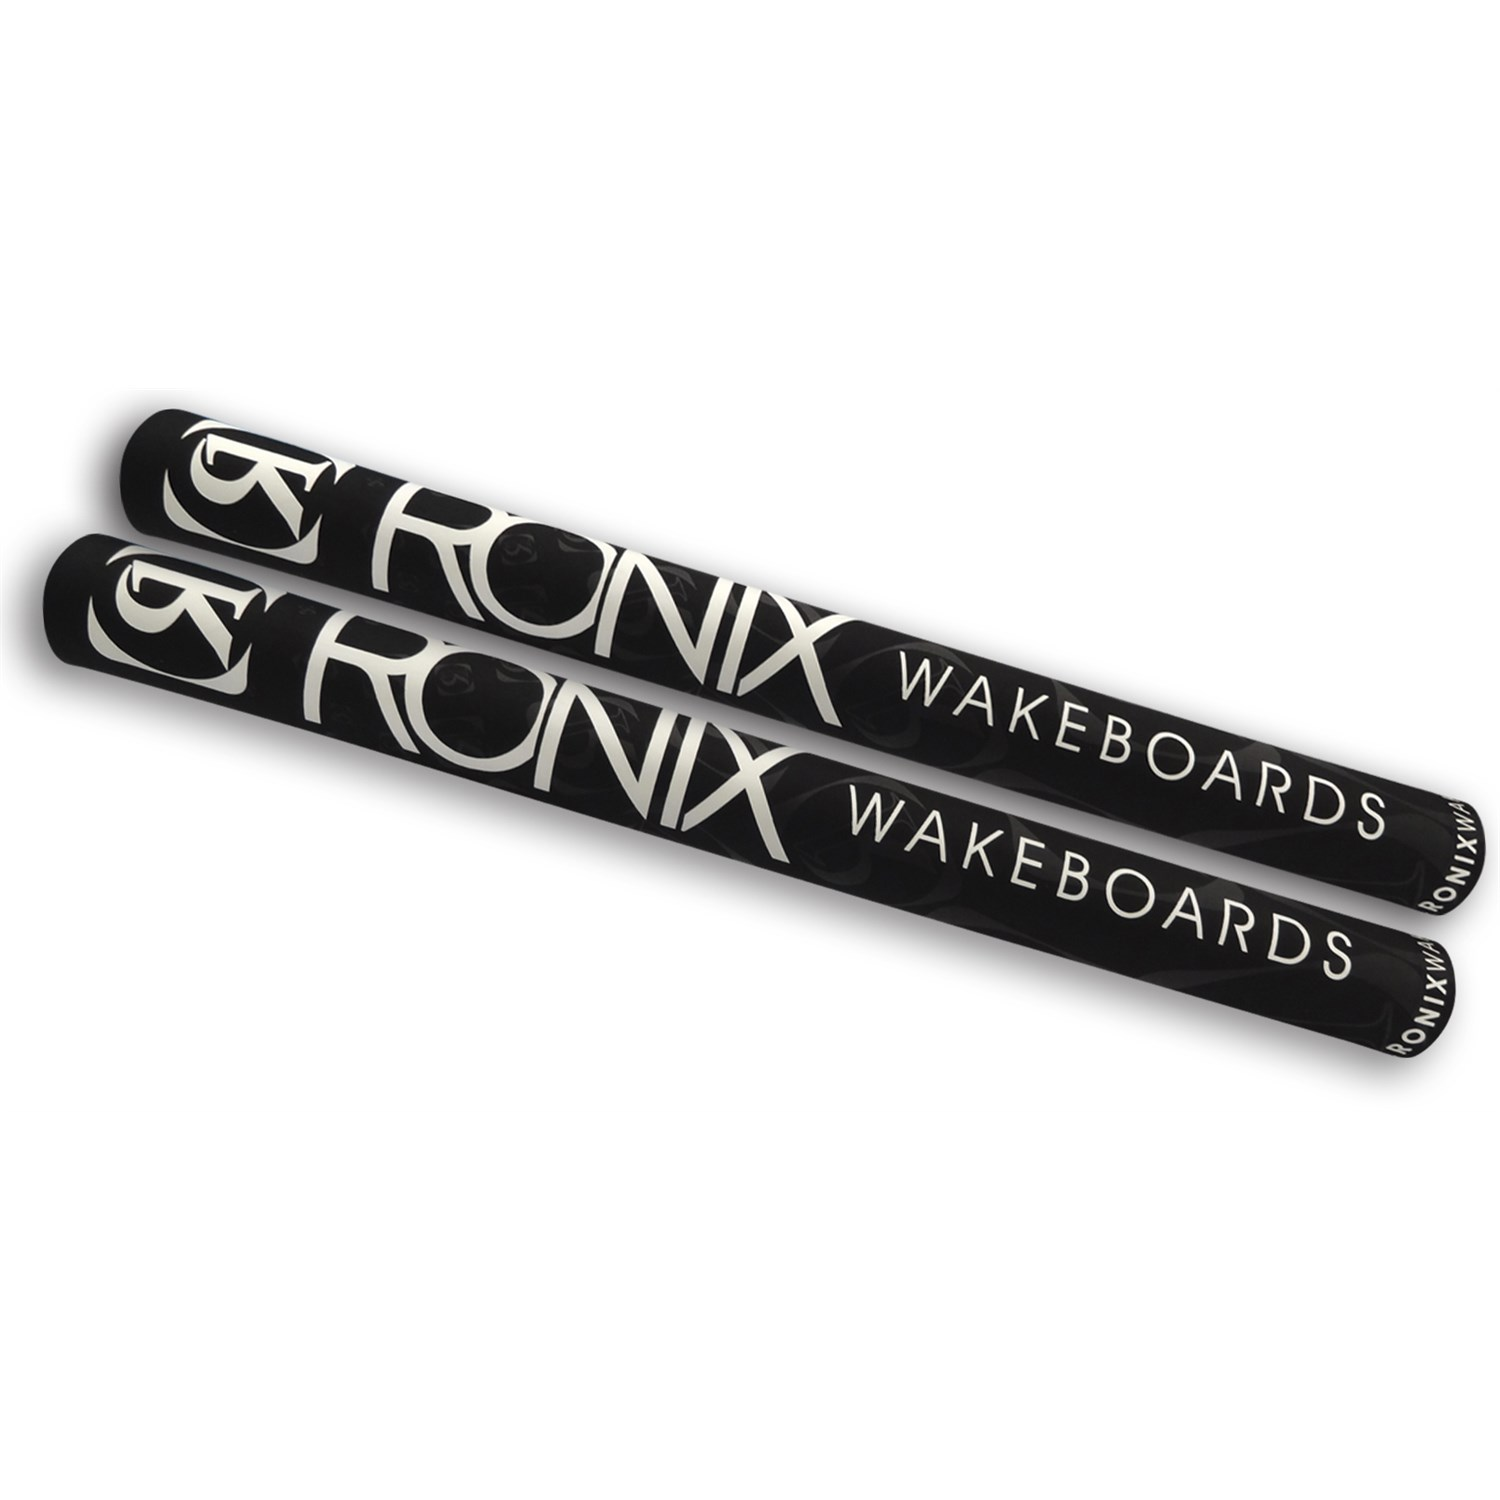 TRAILER BOAT GUIDES RONIX 2018